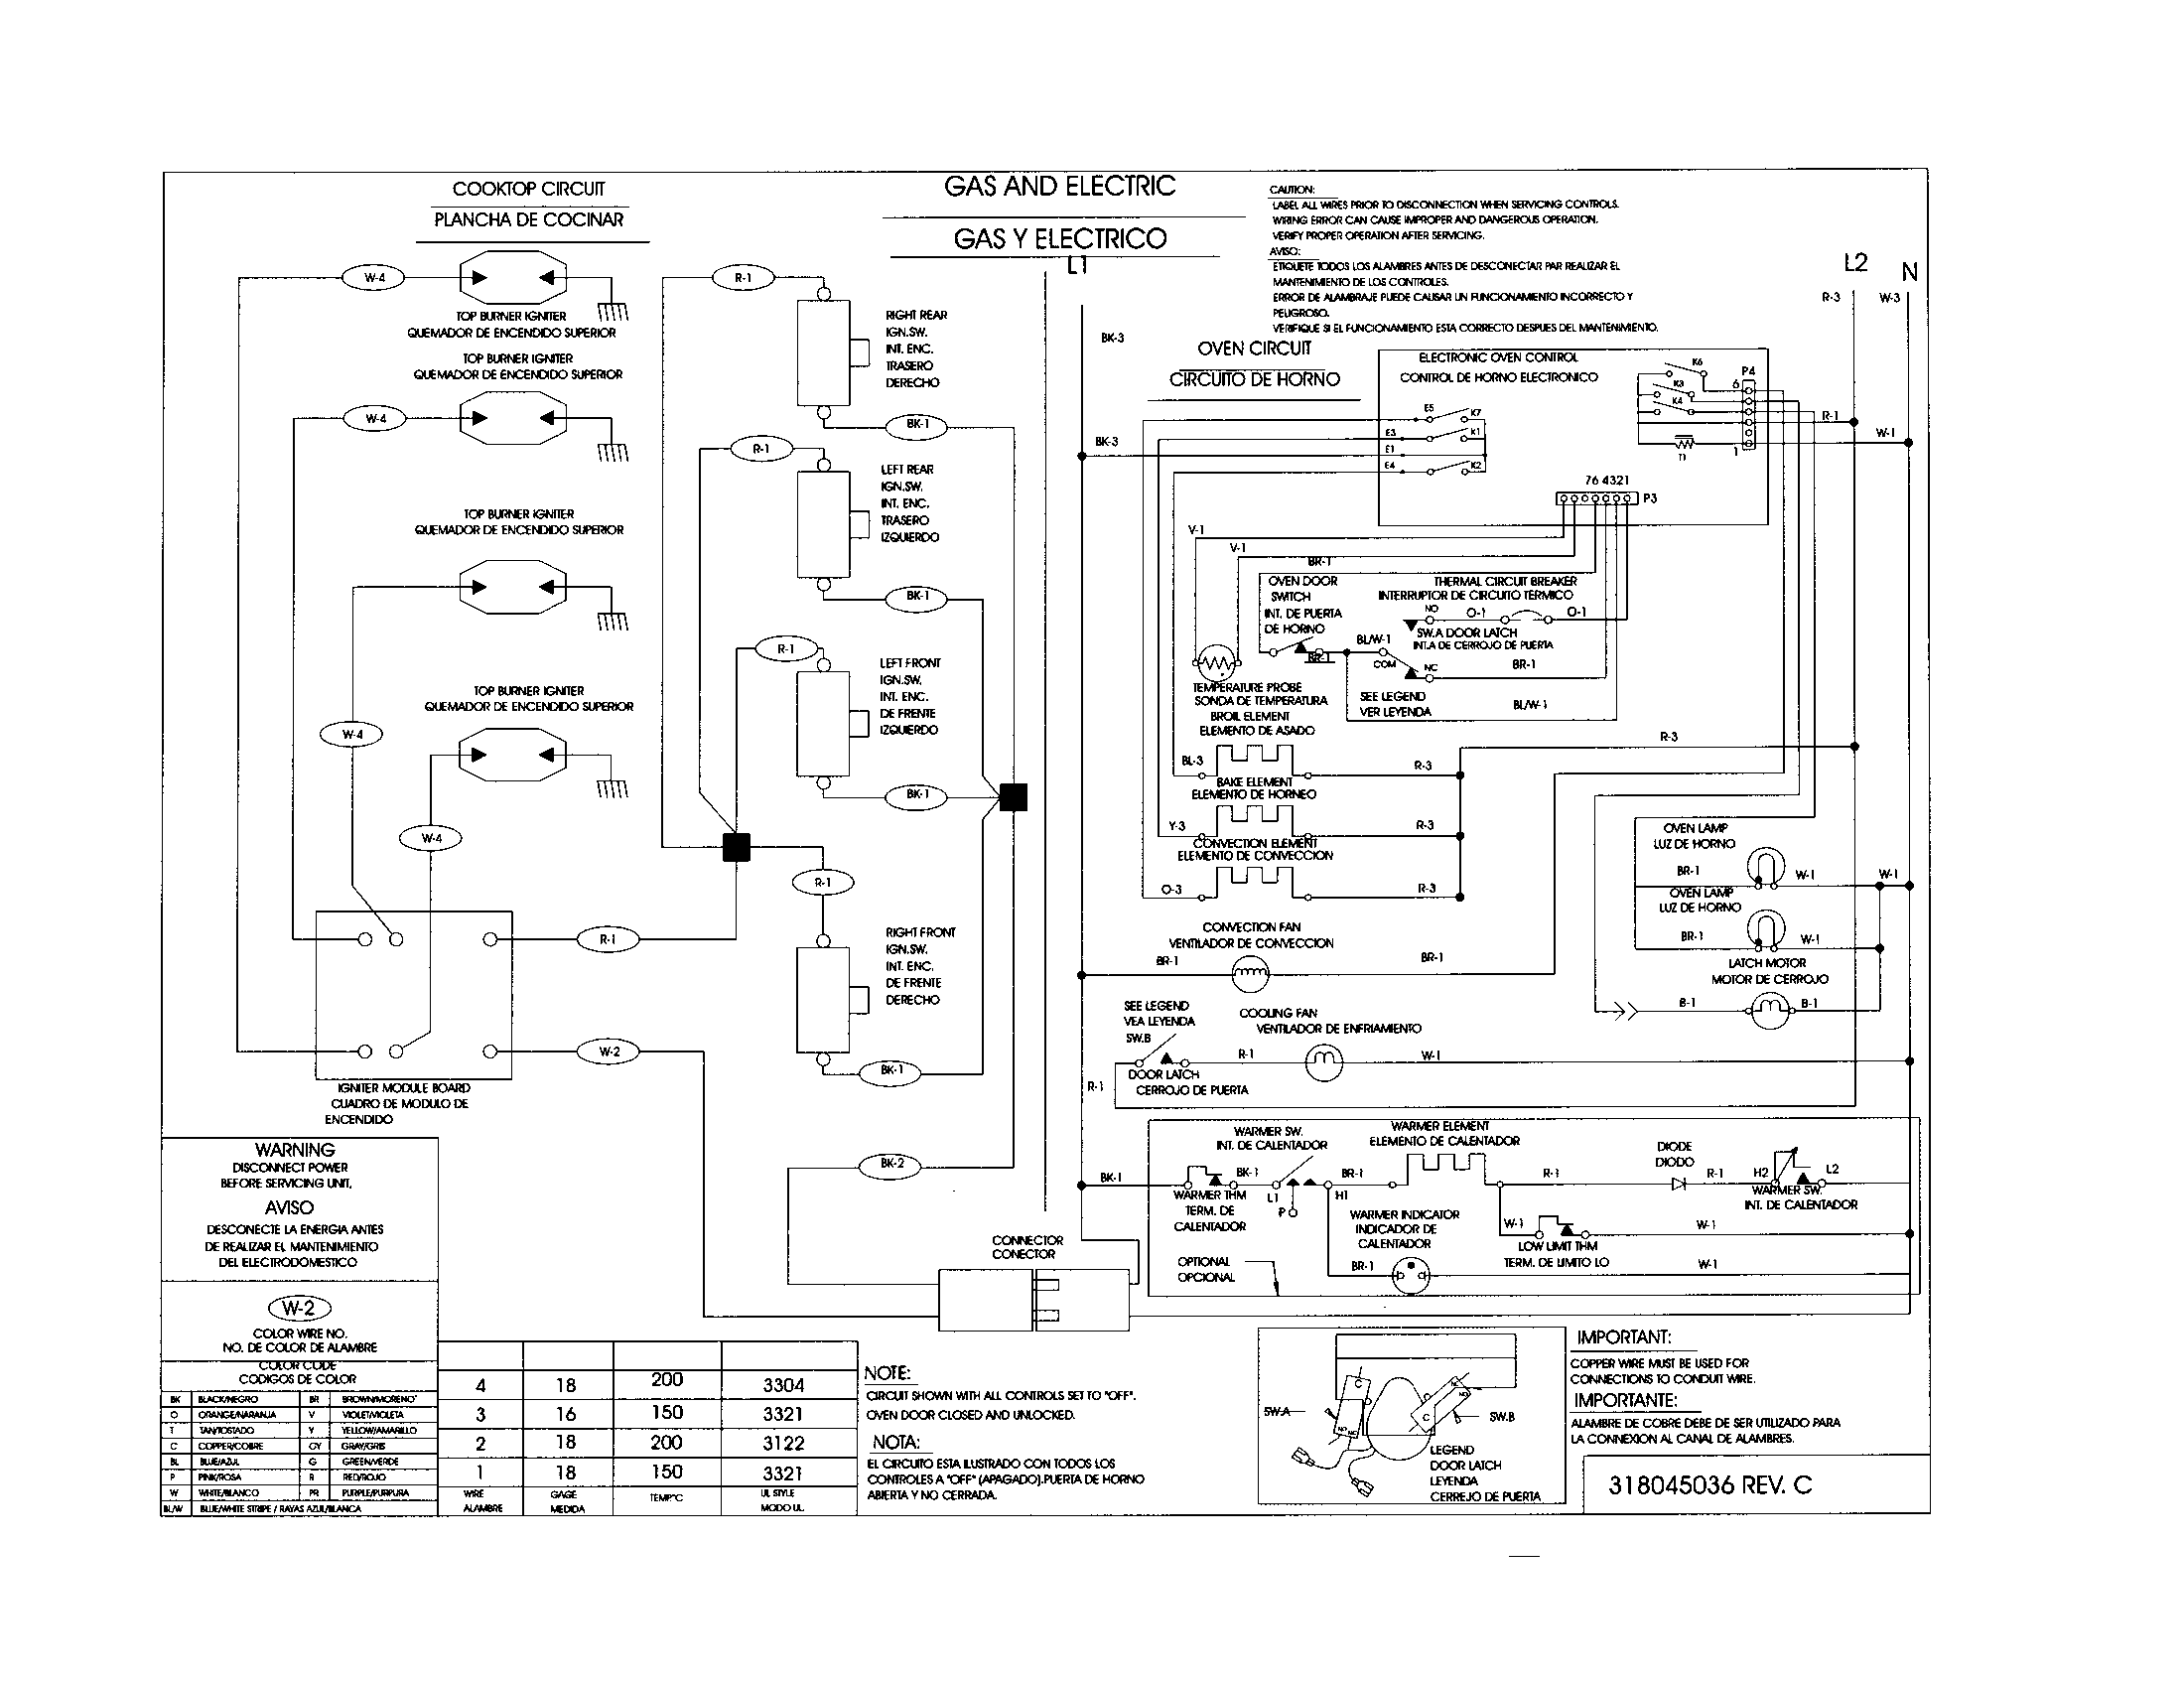 wiring diagram for kenmore elite dryer owner manual \u0026 wiring diagram Kenmore Model 110 Diagram